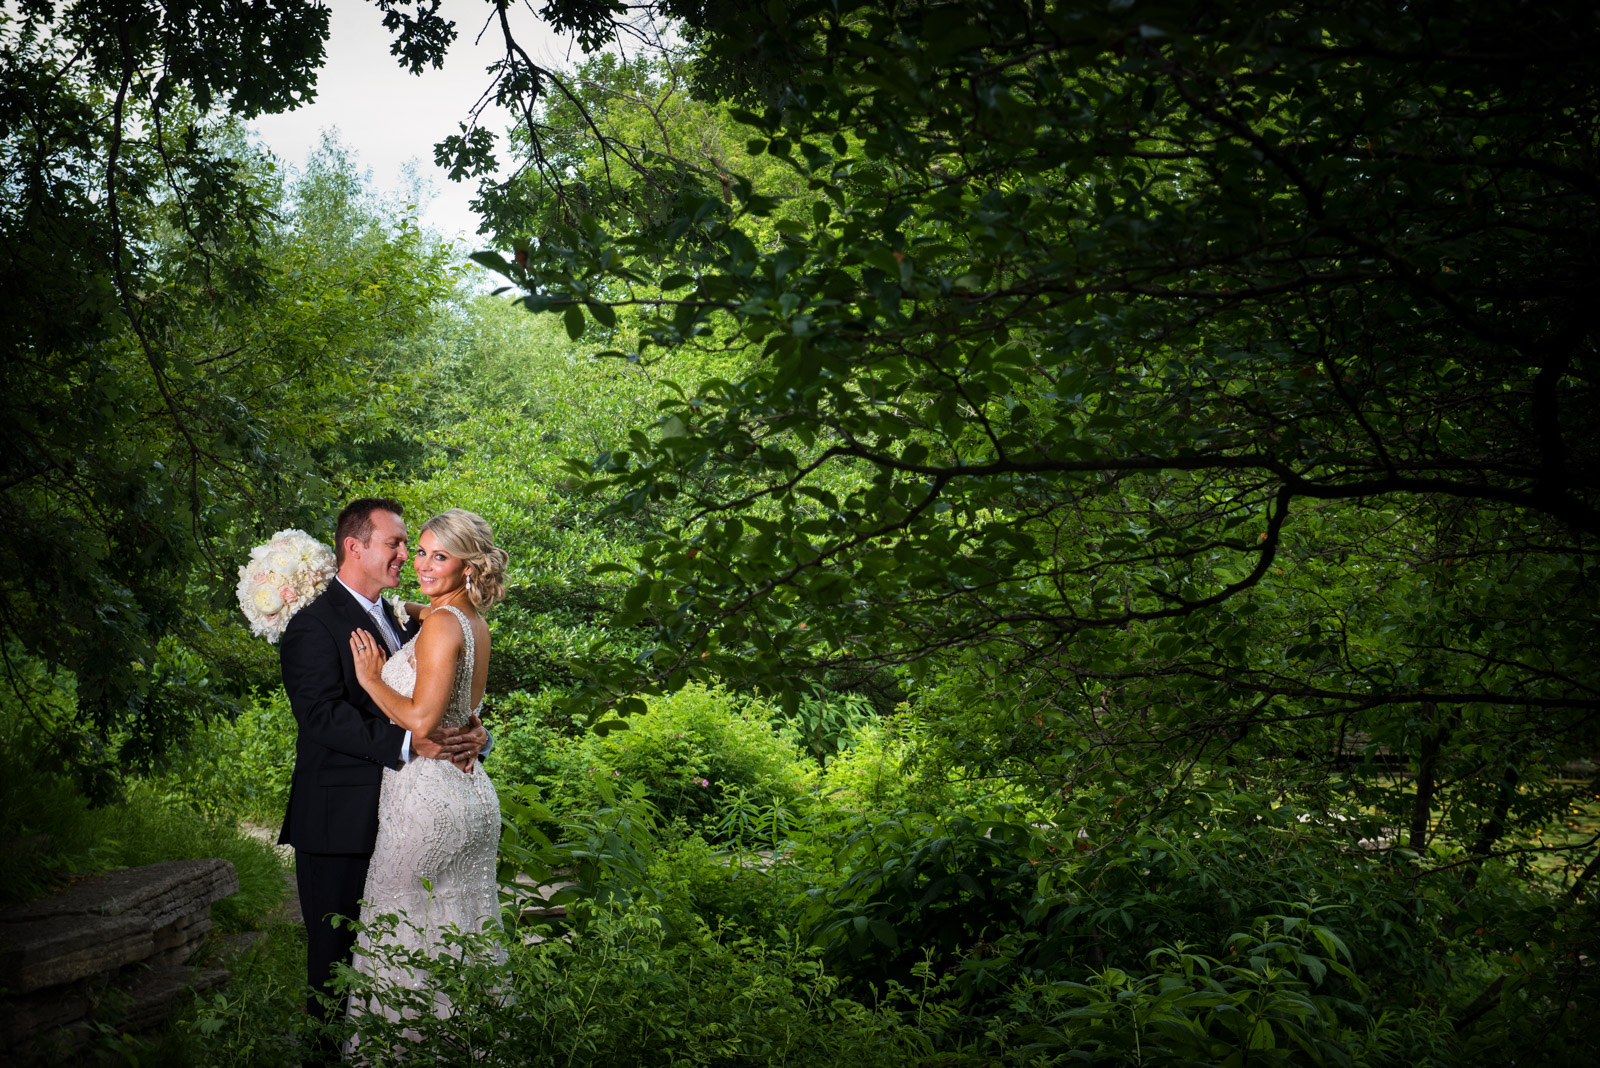 Dramatic Bride and Groom photo in nature surrounded by trees and lush vegetation